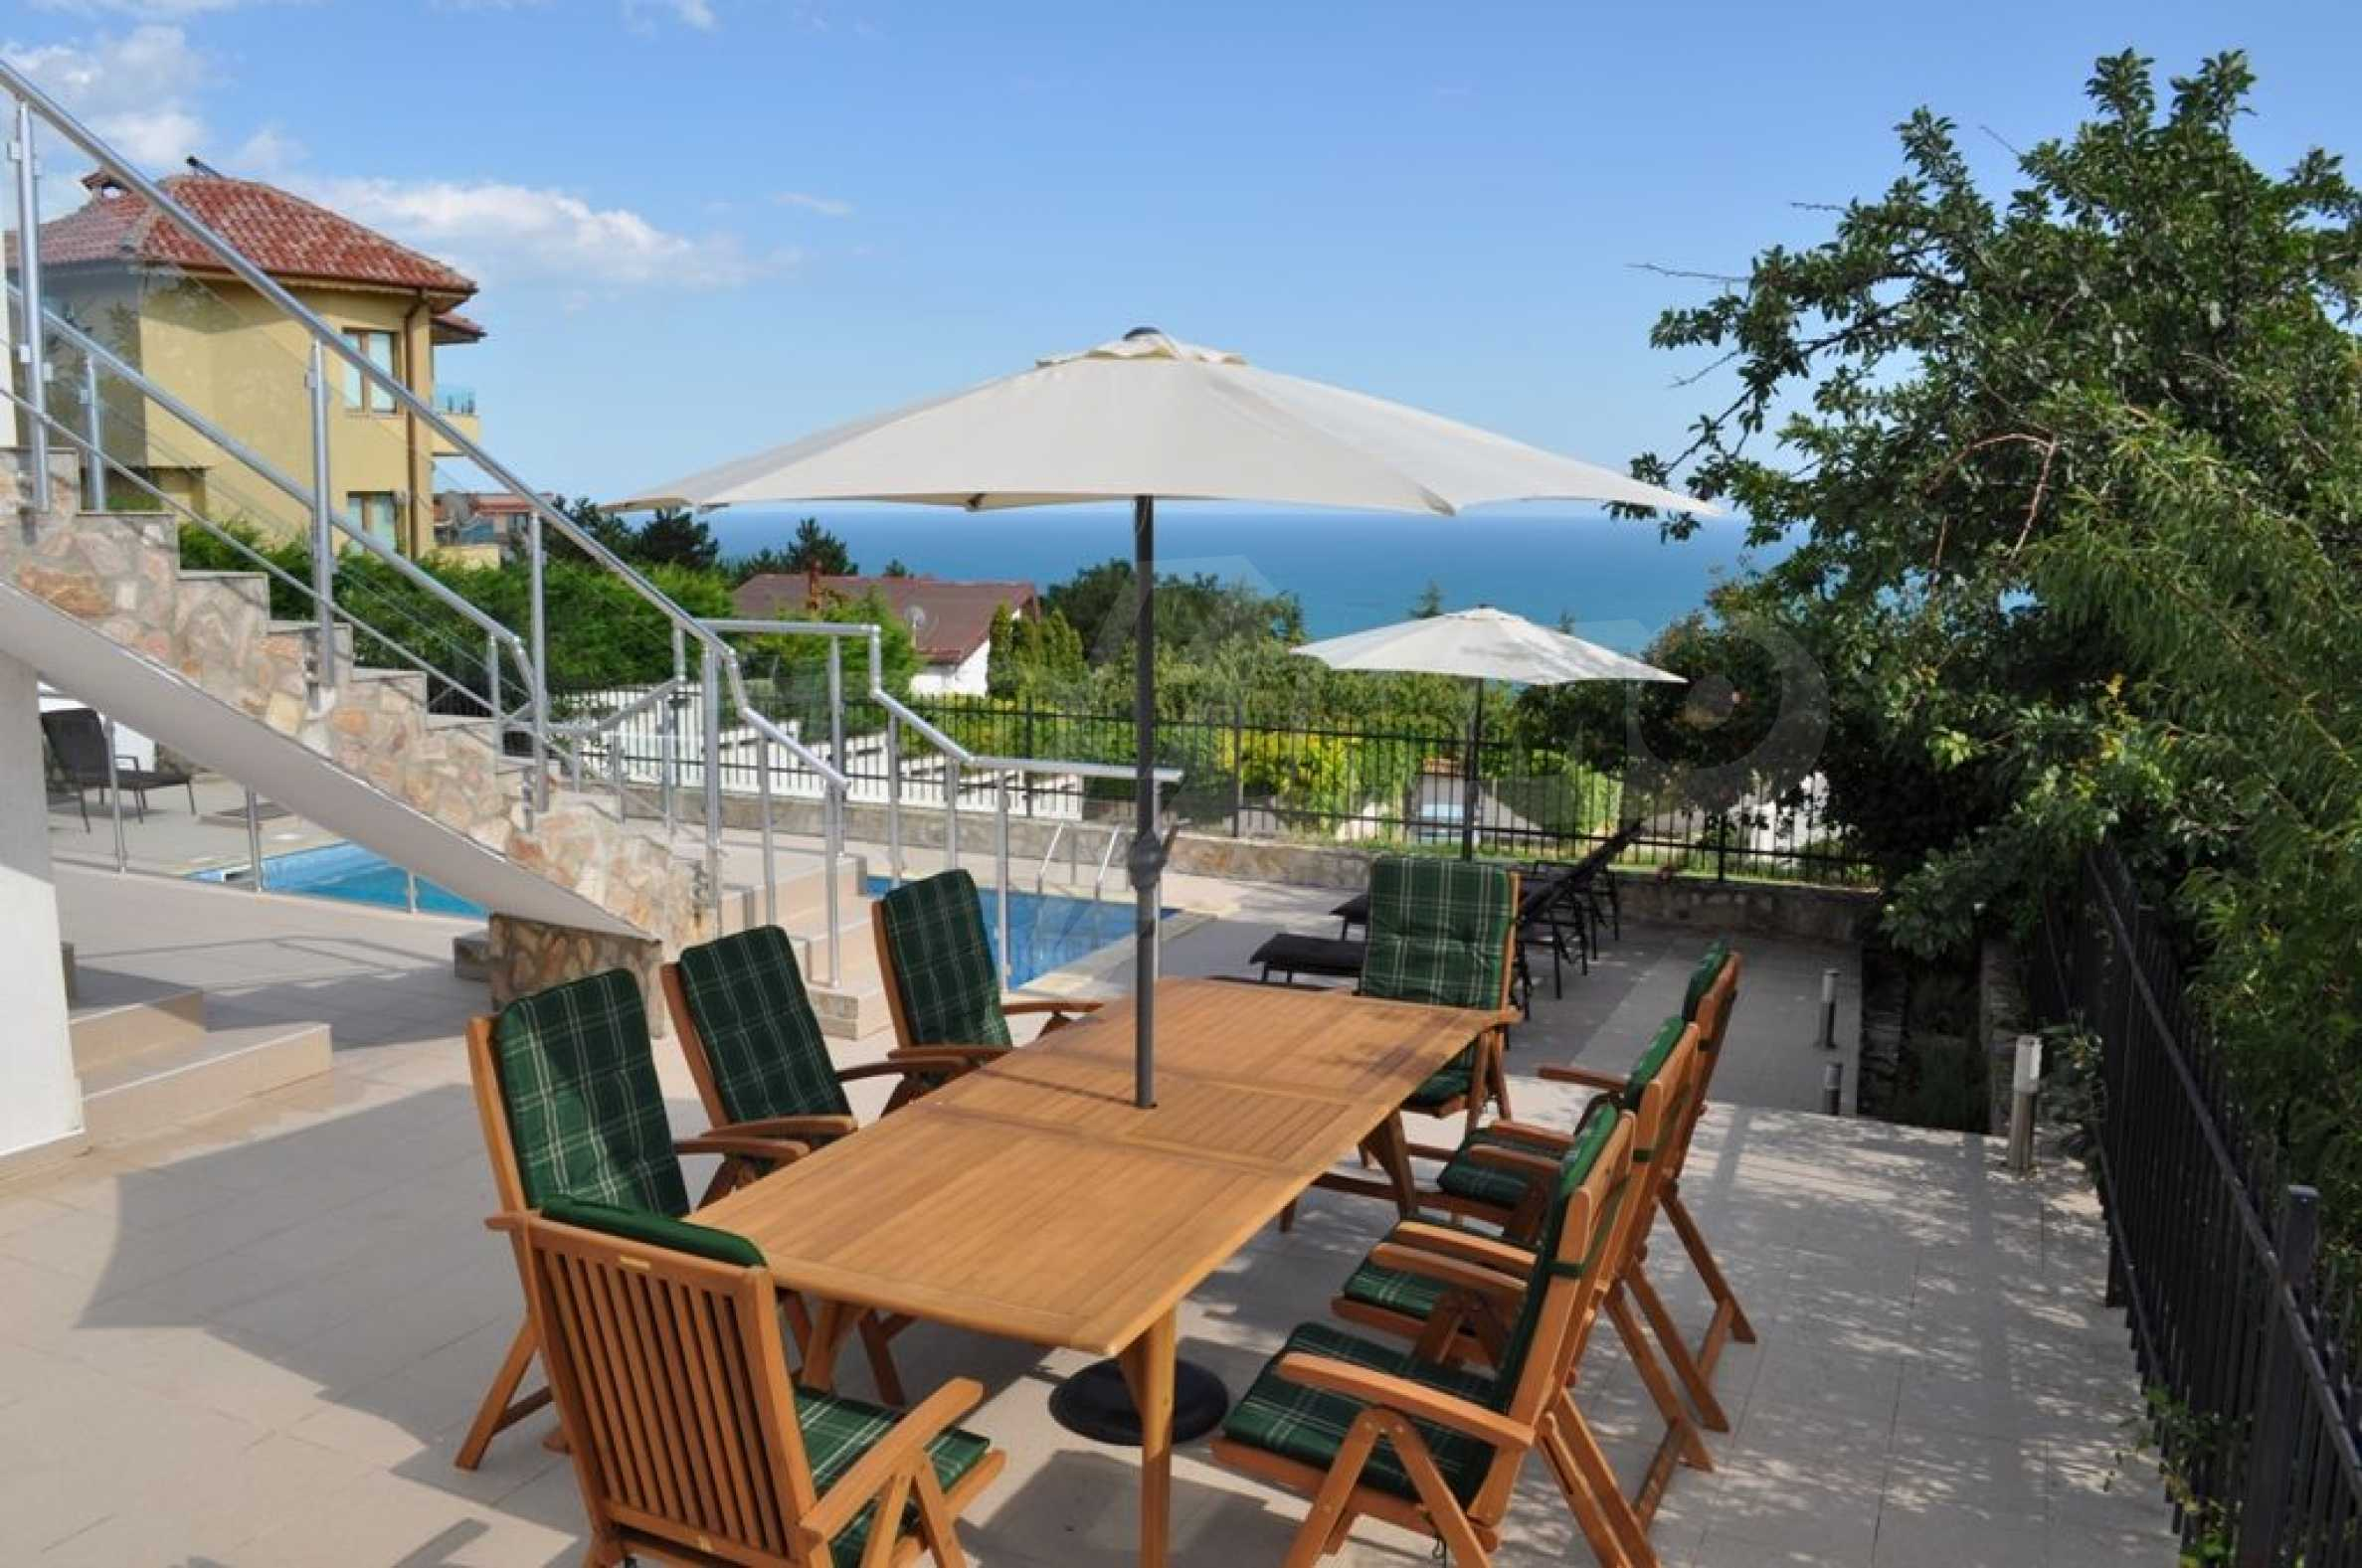 Luxury villa with 4 bedrooms for rent in Albena area  21